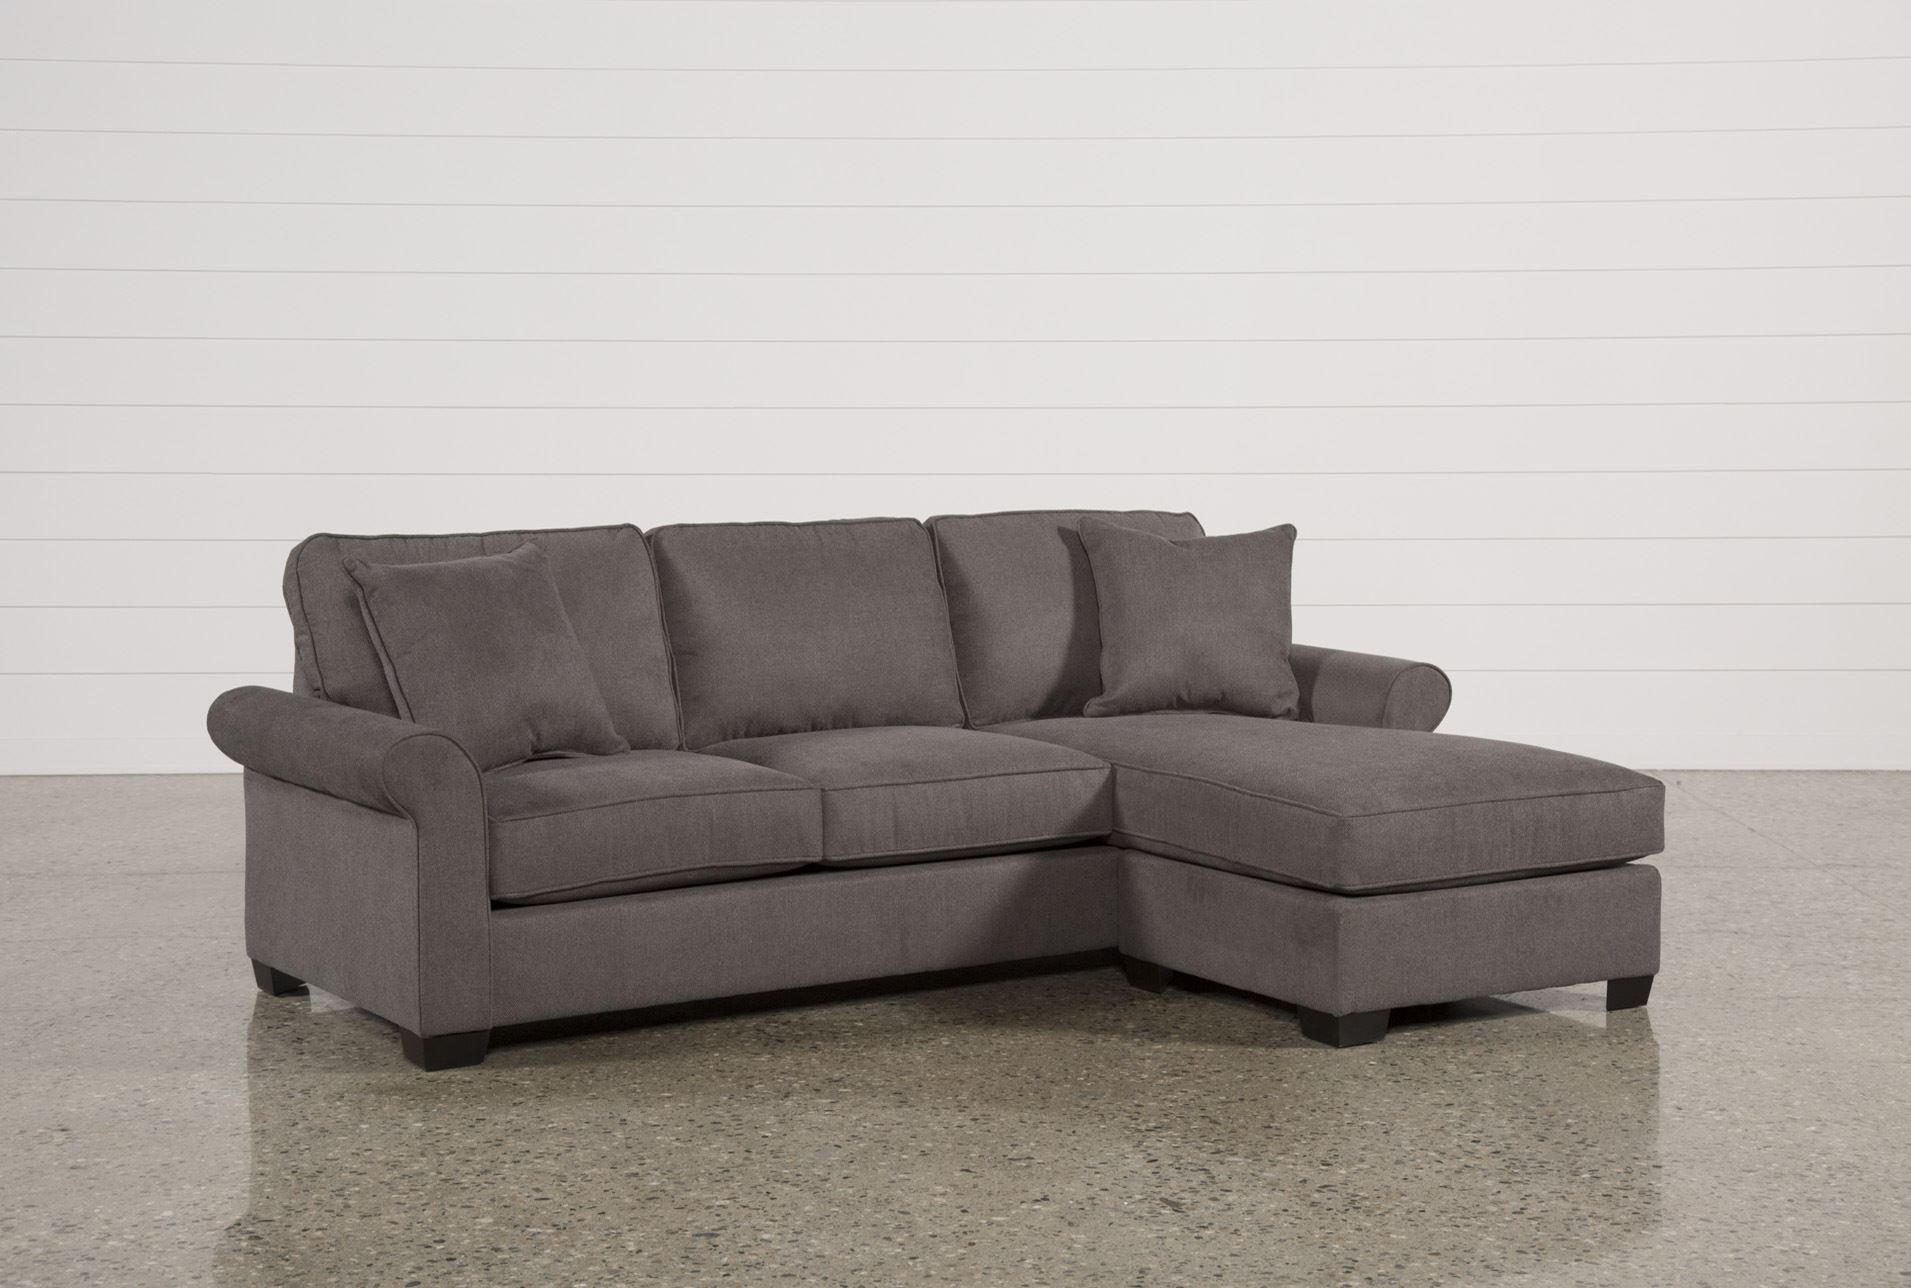 Good Grey Sectional Sofa With Chaise 83 With Additional Sofas and Couches Ideas with Grey Sectional Sofa With Chaise